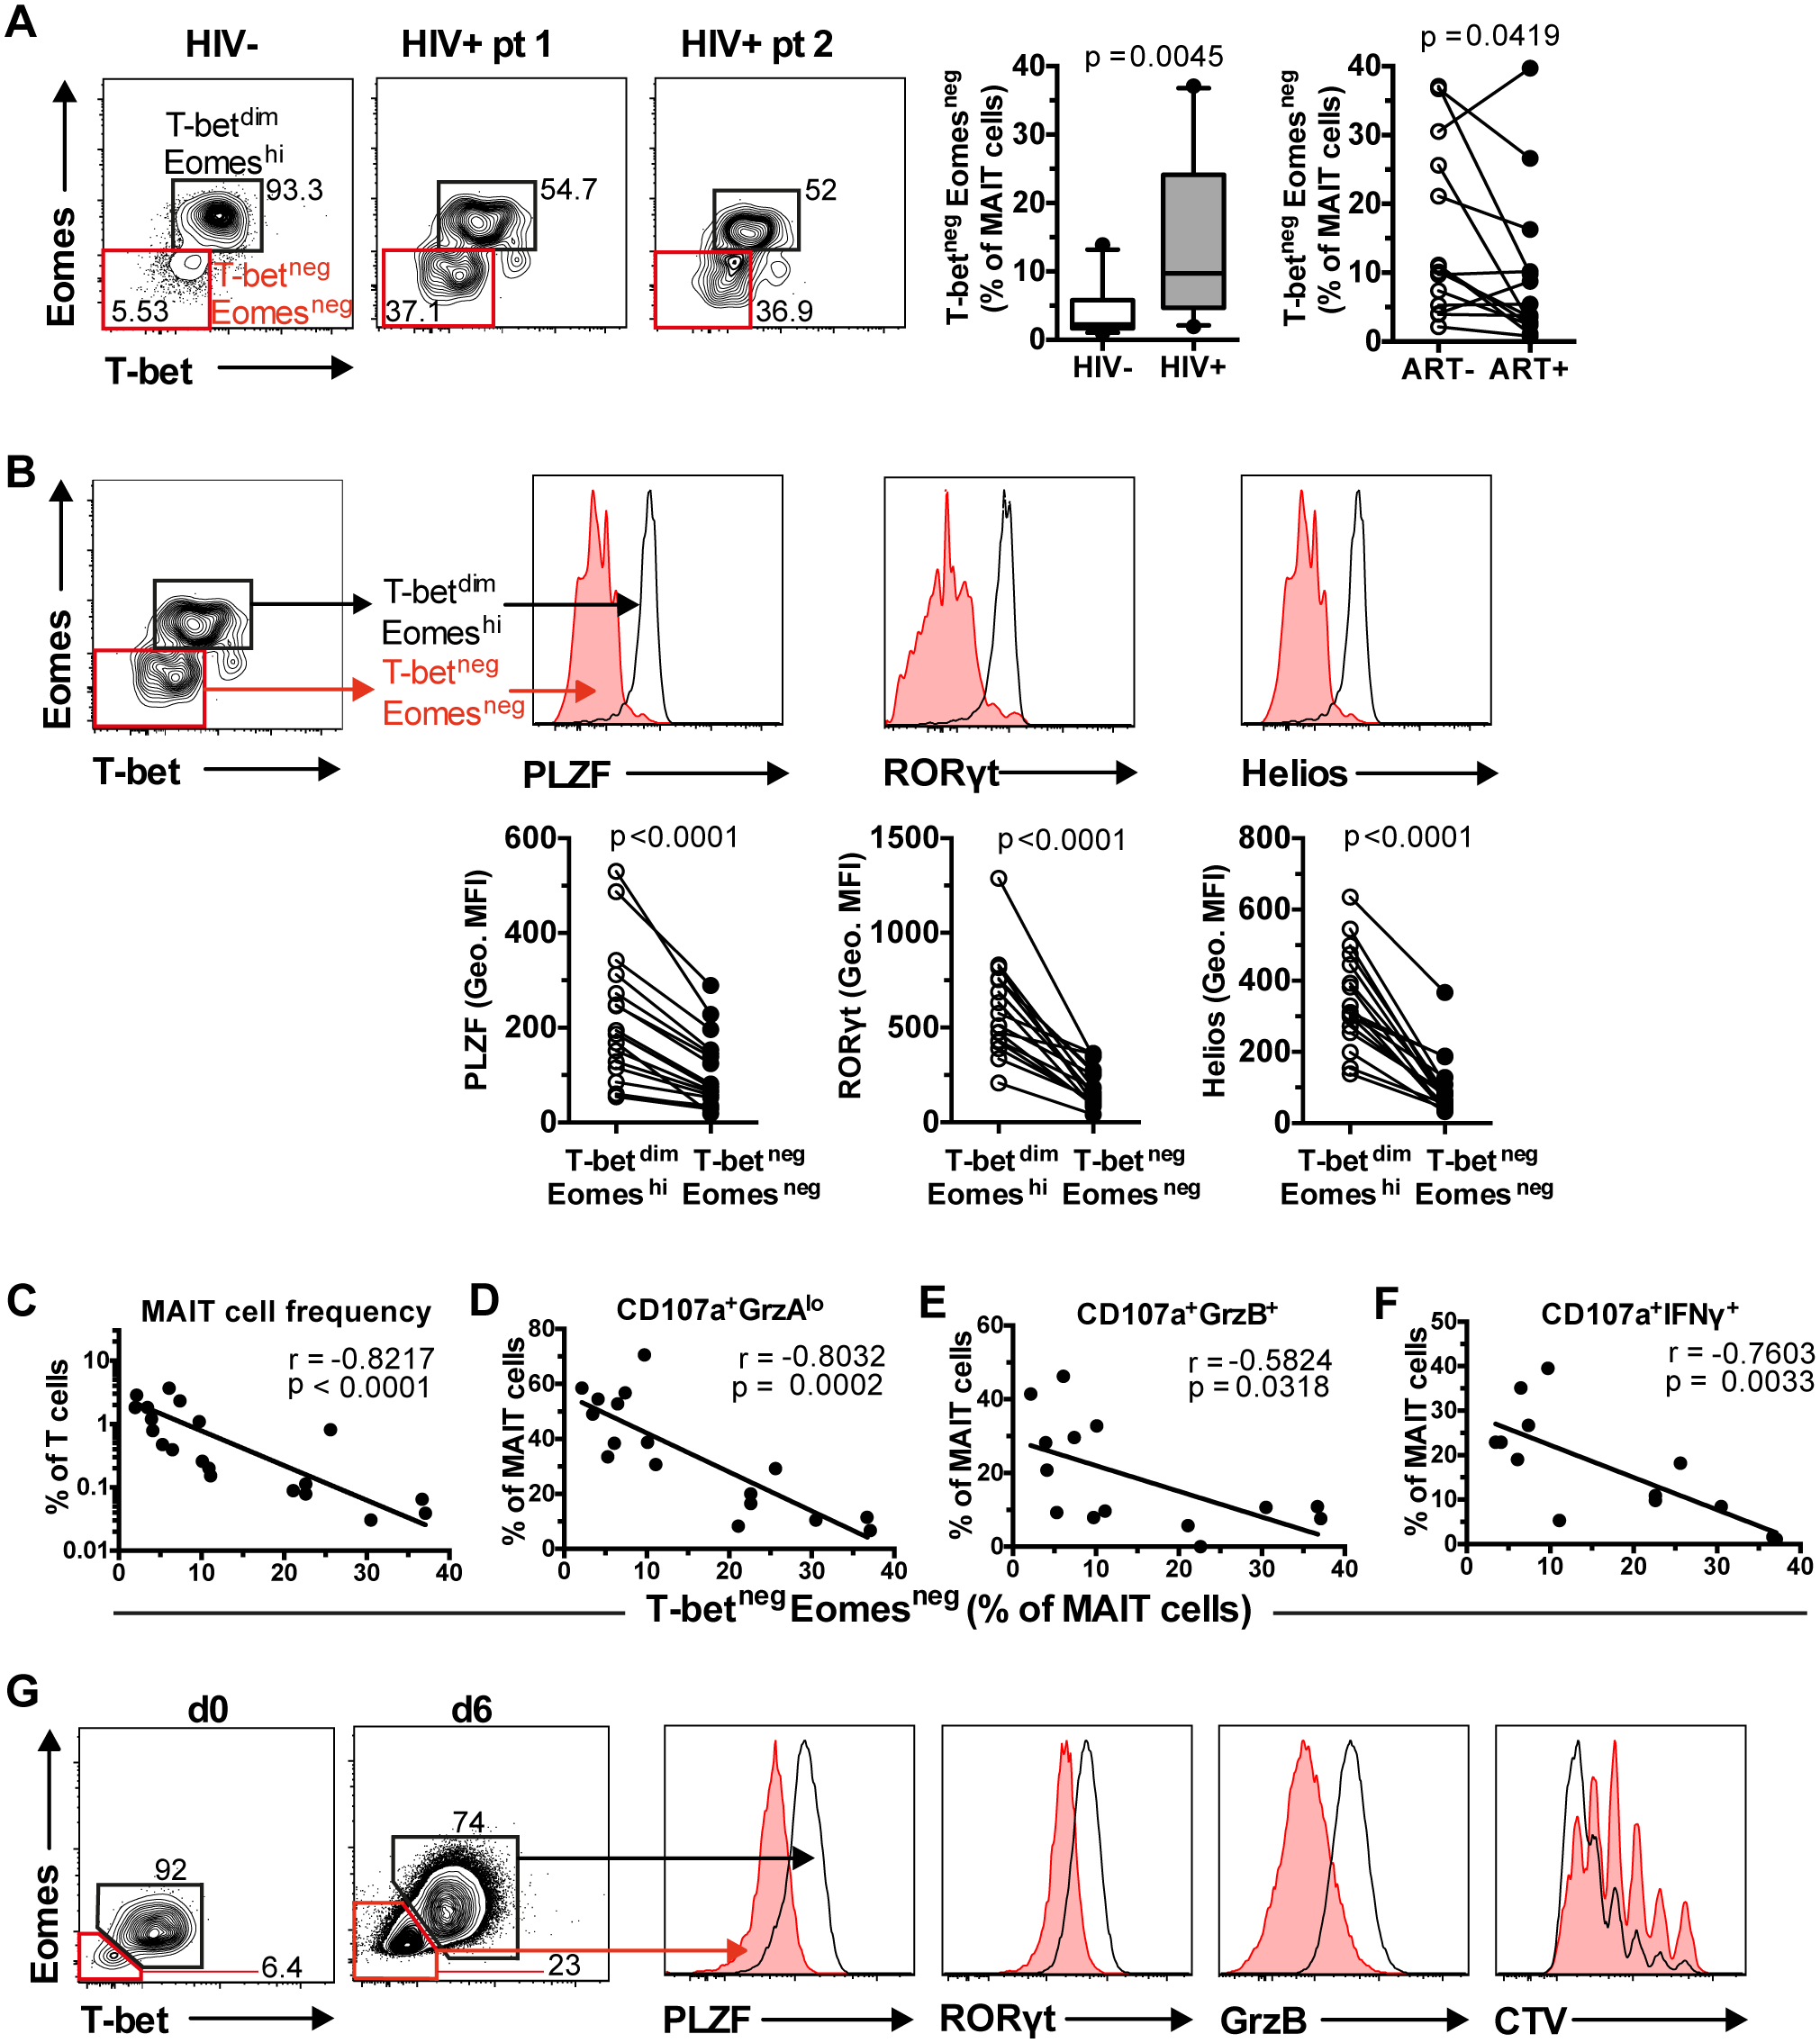 Aberrant MAIT cell transcription factor expression in chronic HIV-1 infection correlates with MAIT cell effector dysfunction.